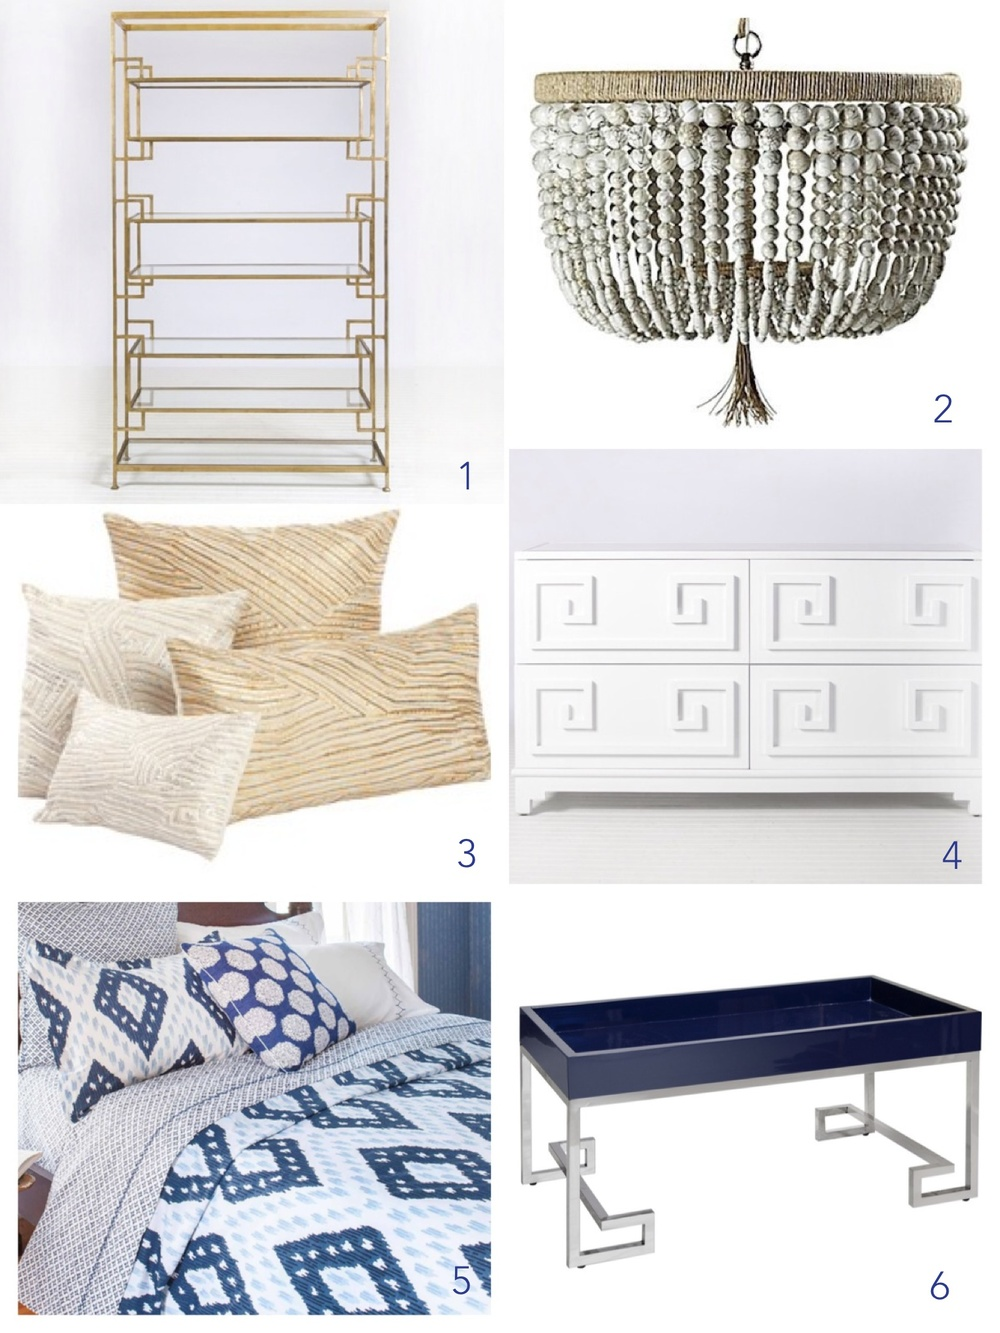 1. Gold leaf étagère / 2. Beaded chandelier with jute wrapping detail / 3. Elegant pillow collection (embroidery in gold and silver on linen / 4.  White lacquer chest with greek key detail on drawers / 5.  Indigo ikat bedding / 6. Cobalt blue lacquer cocktail table with silver leaf base